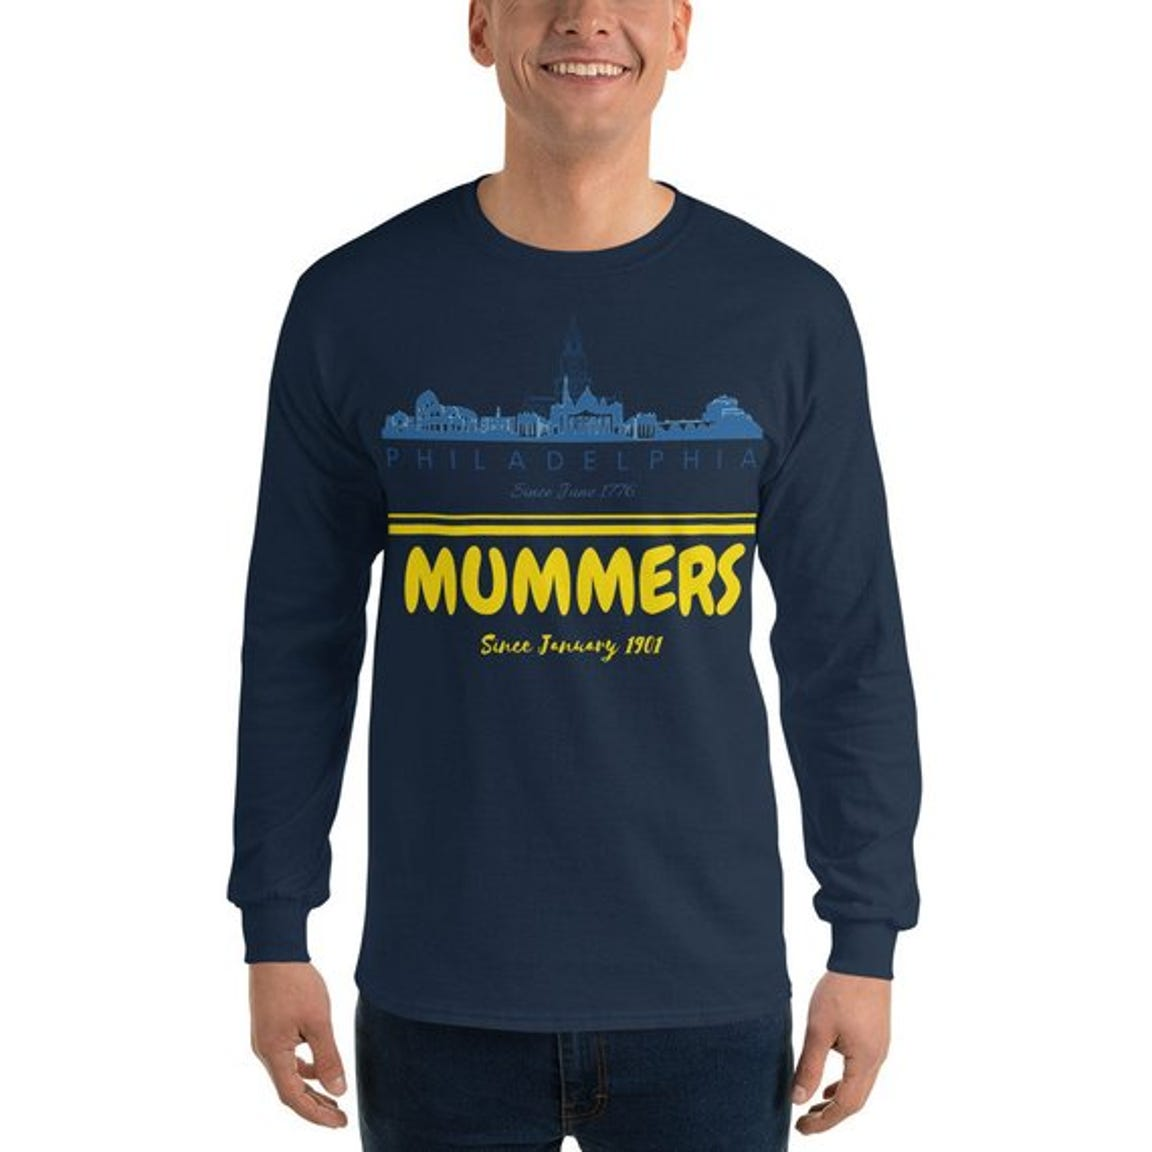 The Philadelphia Mummers long-sleeve tee is available by SpaceOdditee at Etsy.com